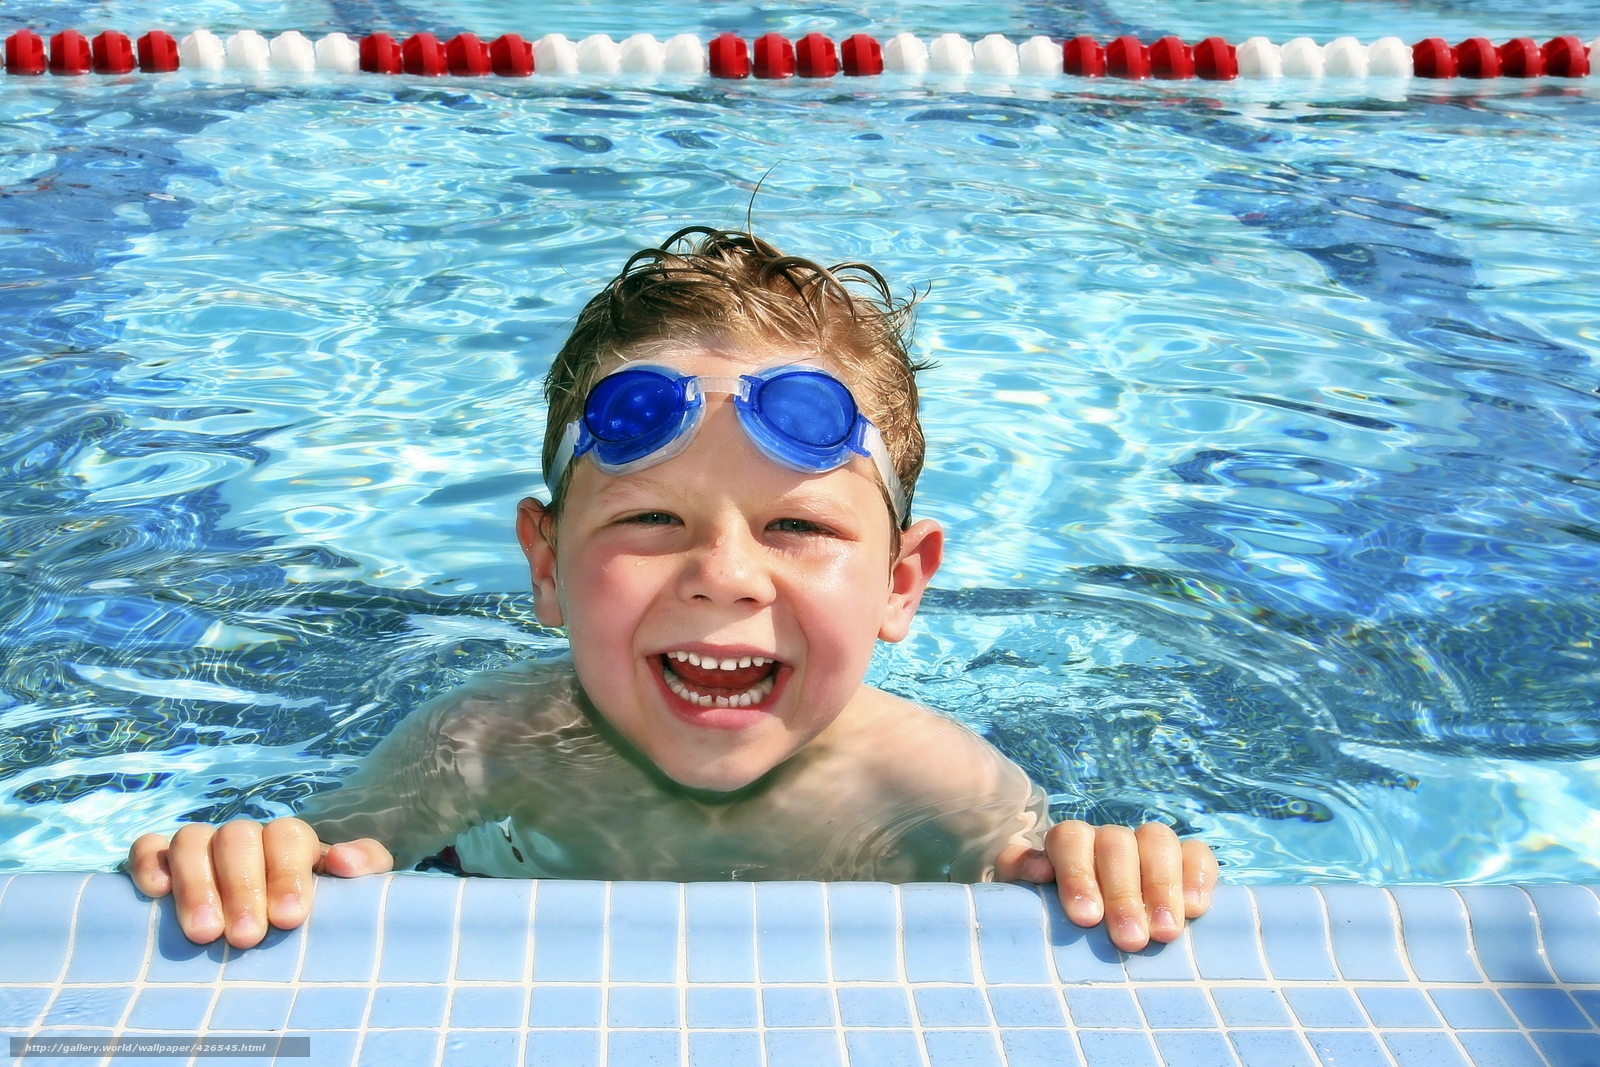 Download Wallpaper Boy Child Water Swimming Pool Free Desktop Wallpaper In The Resolution